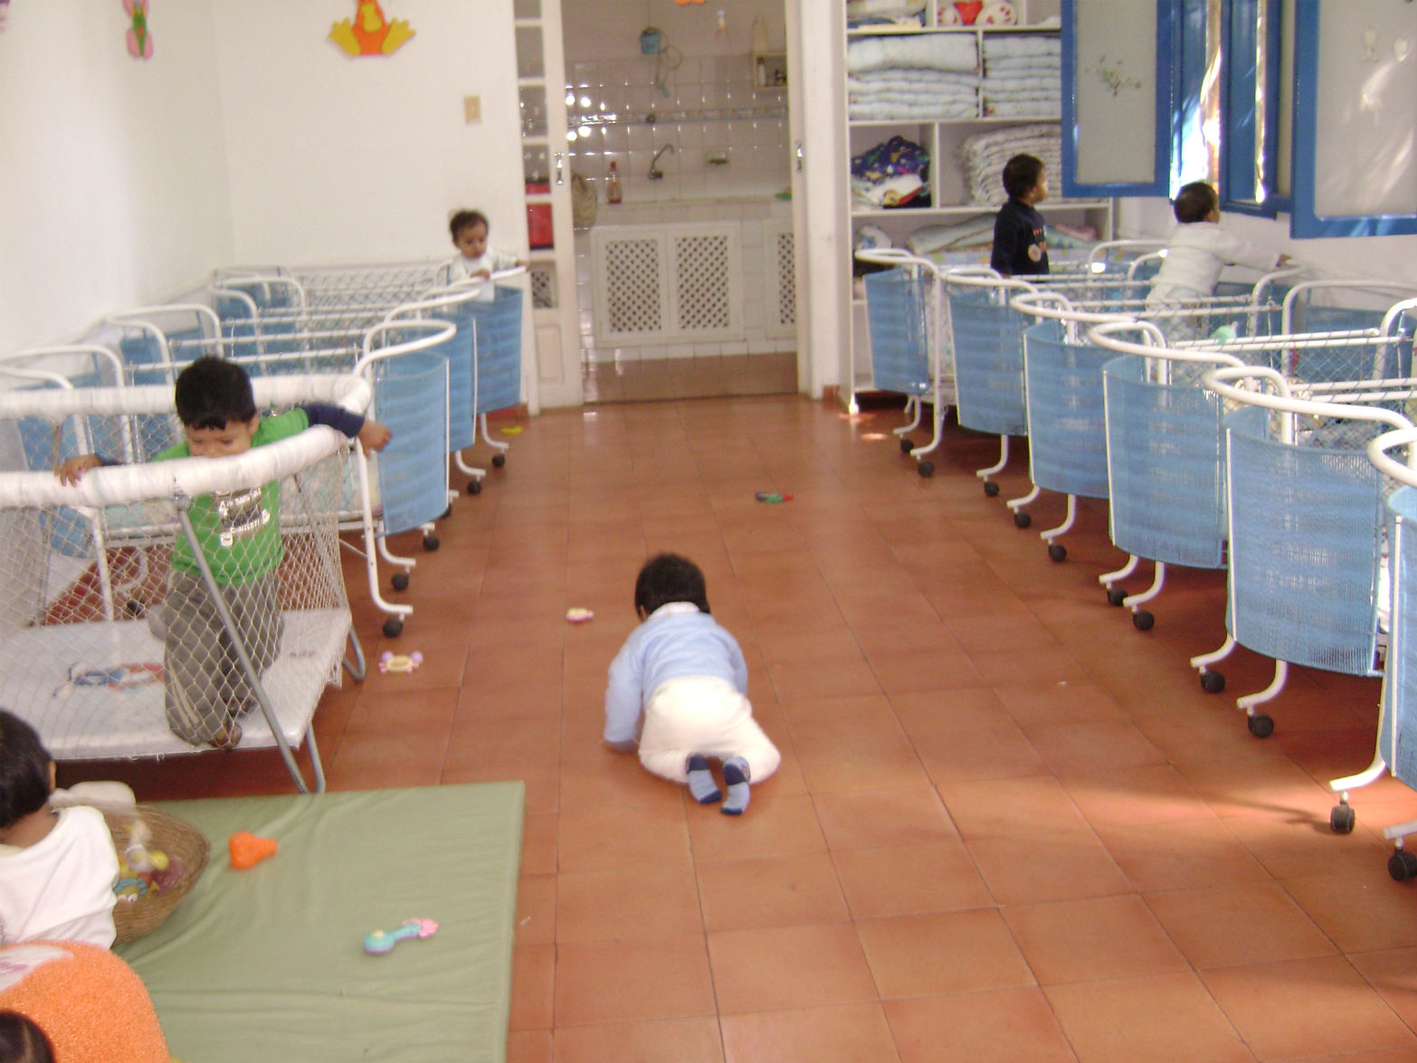 Sleeping ward for the toddlers